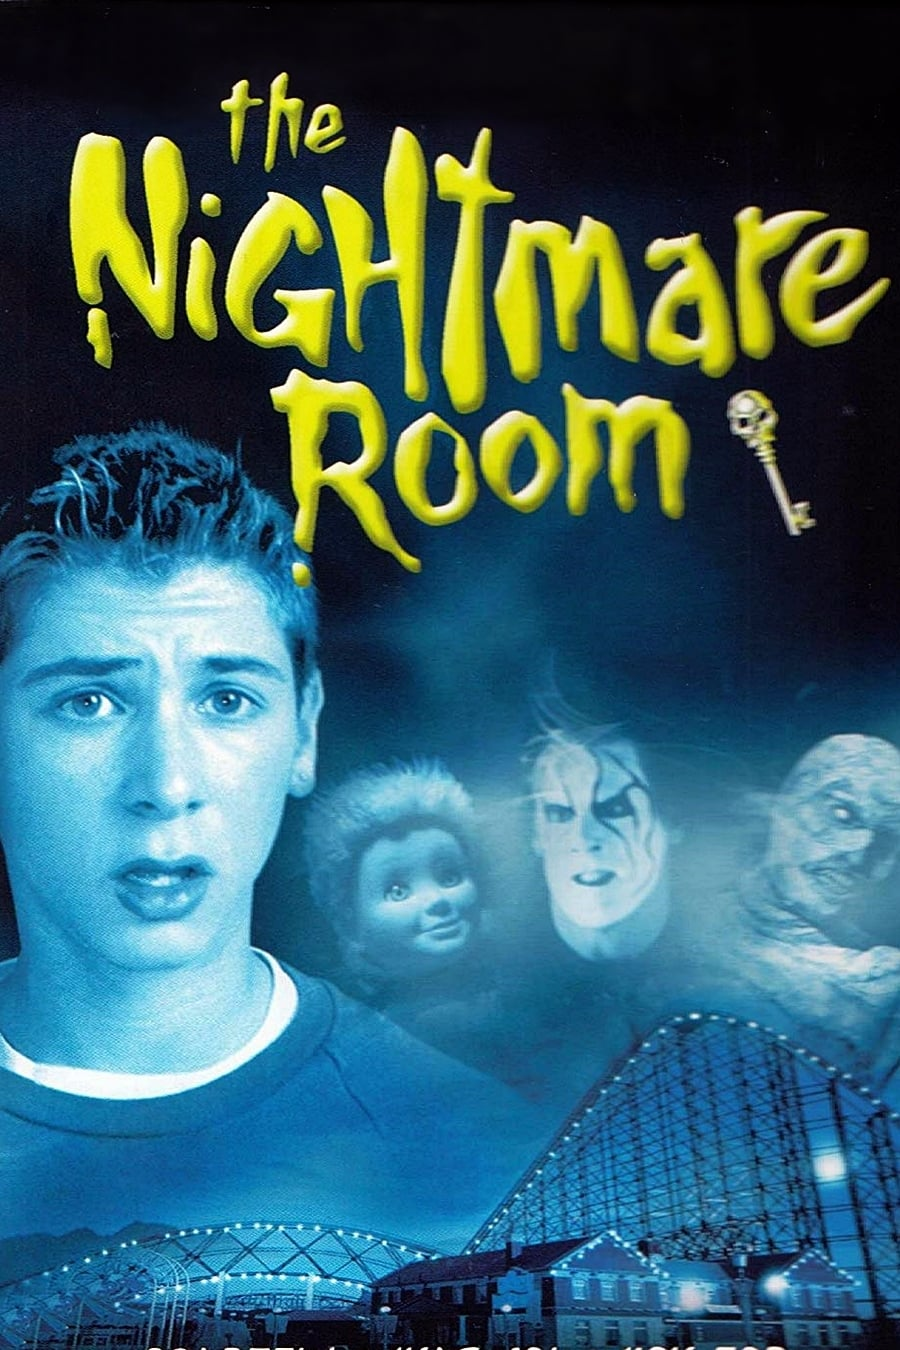 The Nightmare Room (2001)